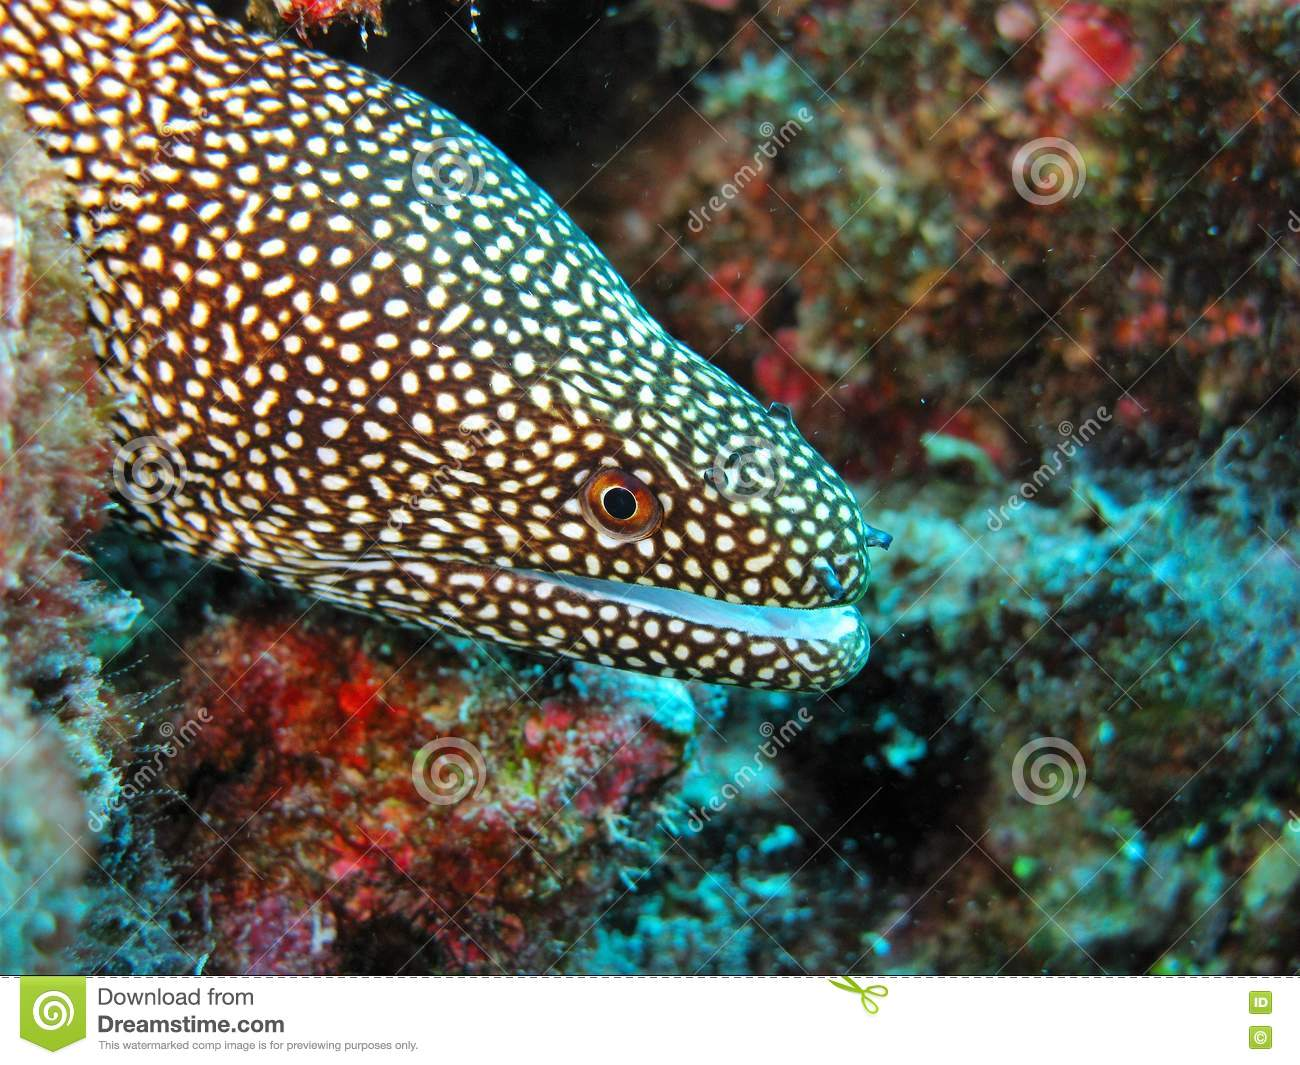 Coral Reef Spotted Moray Eel Stock Photo.